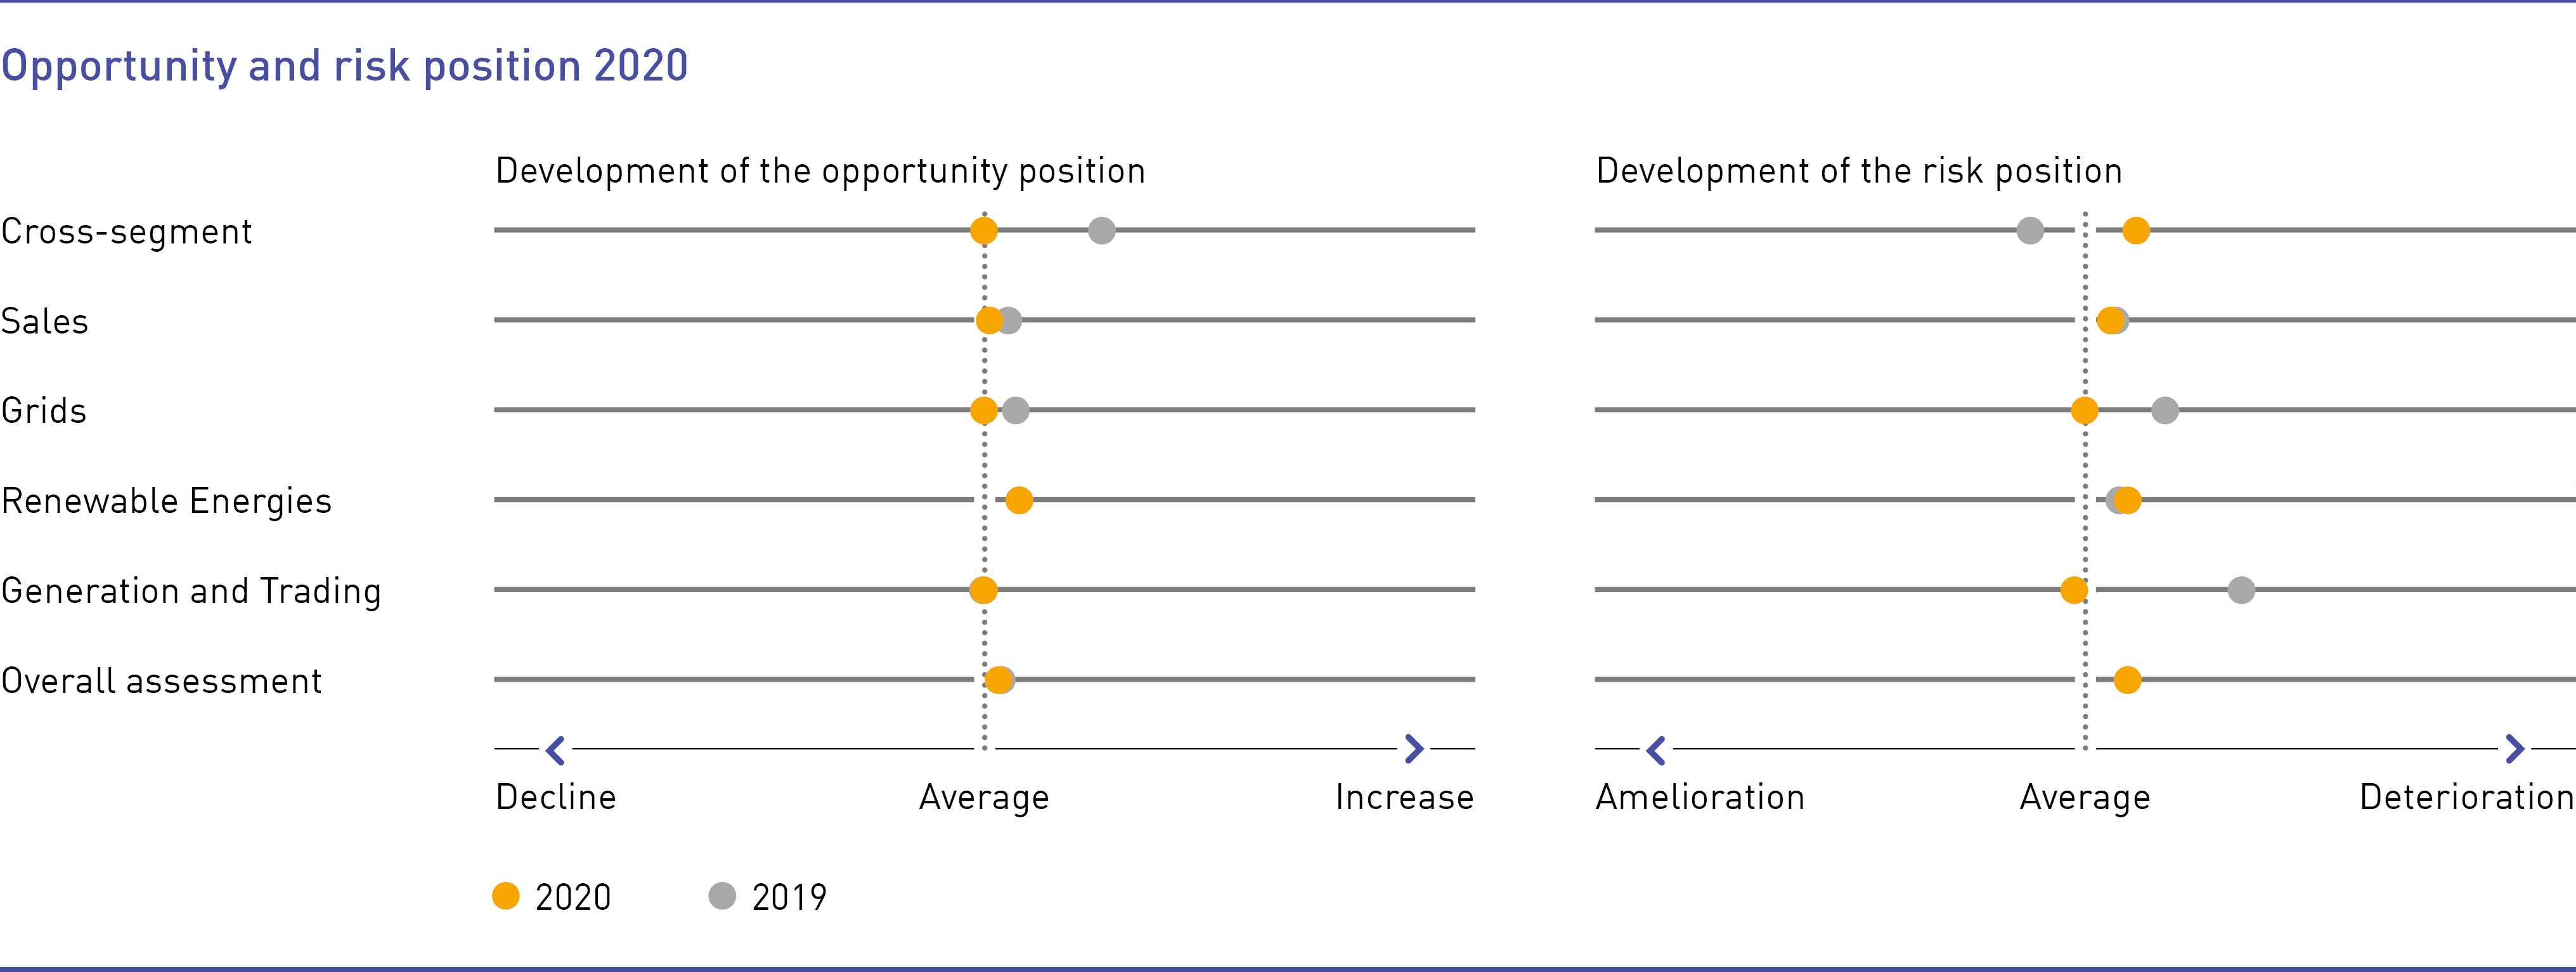 Opportunity and risk position 2020